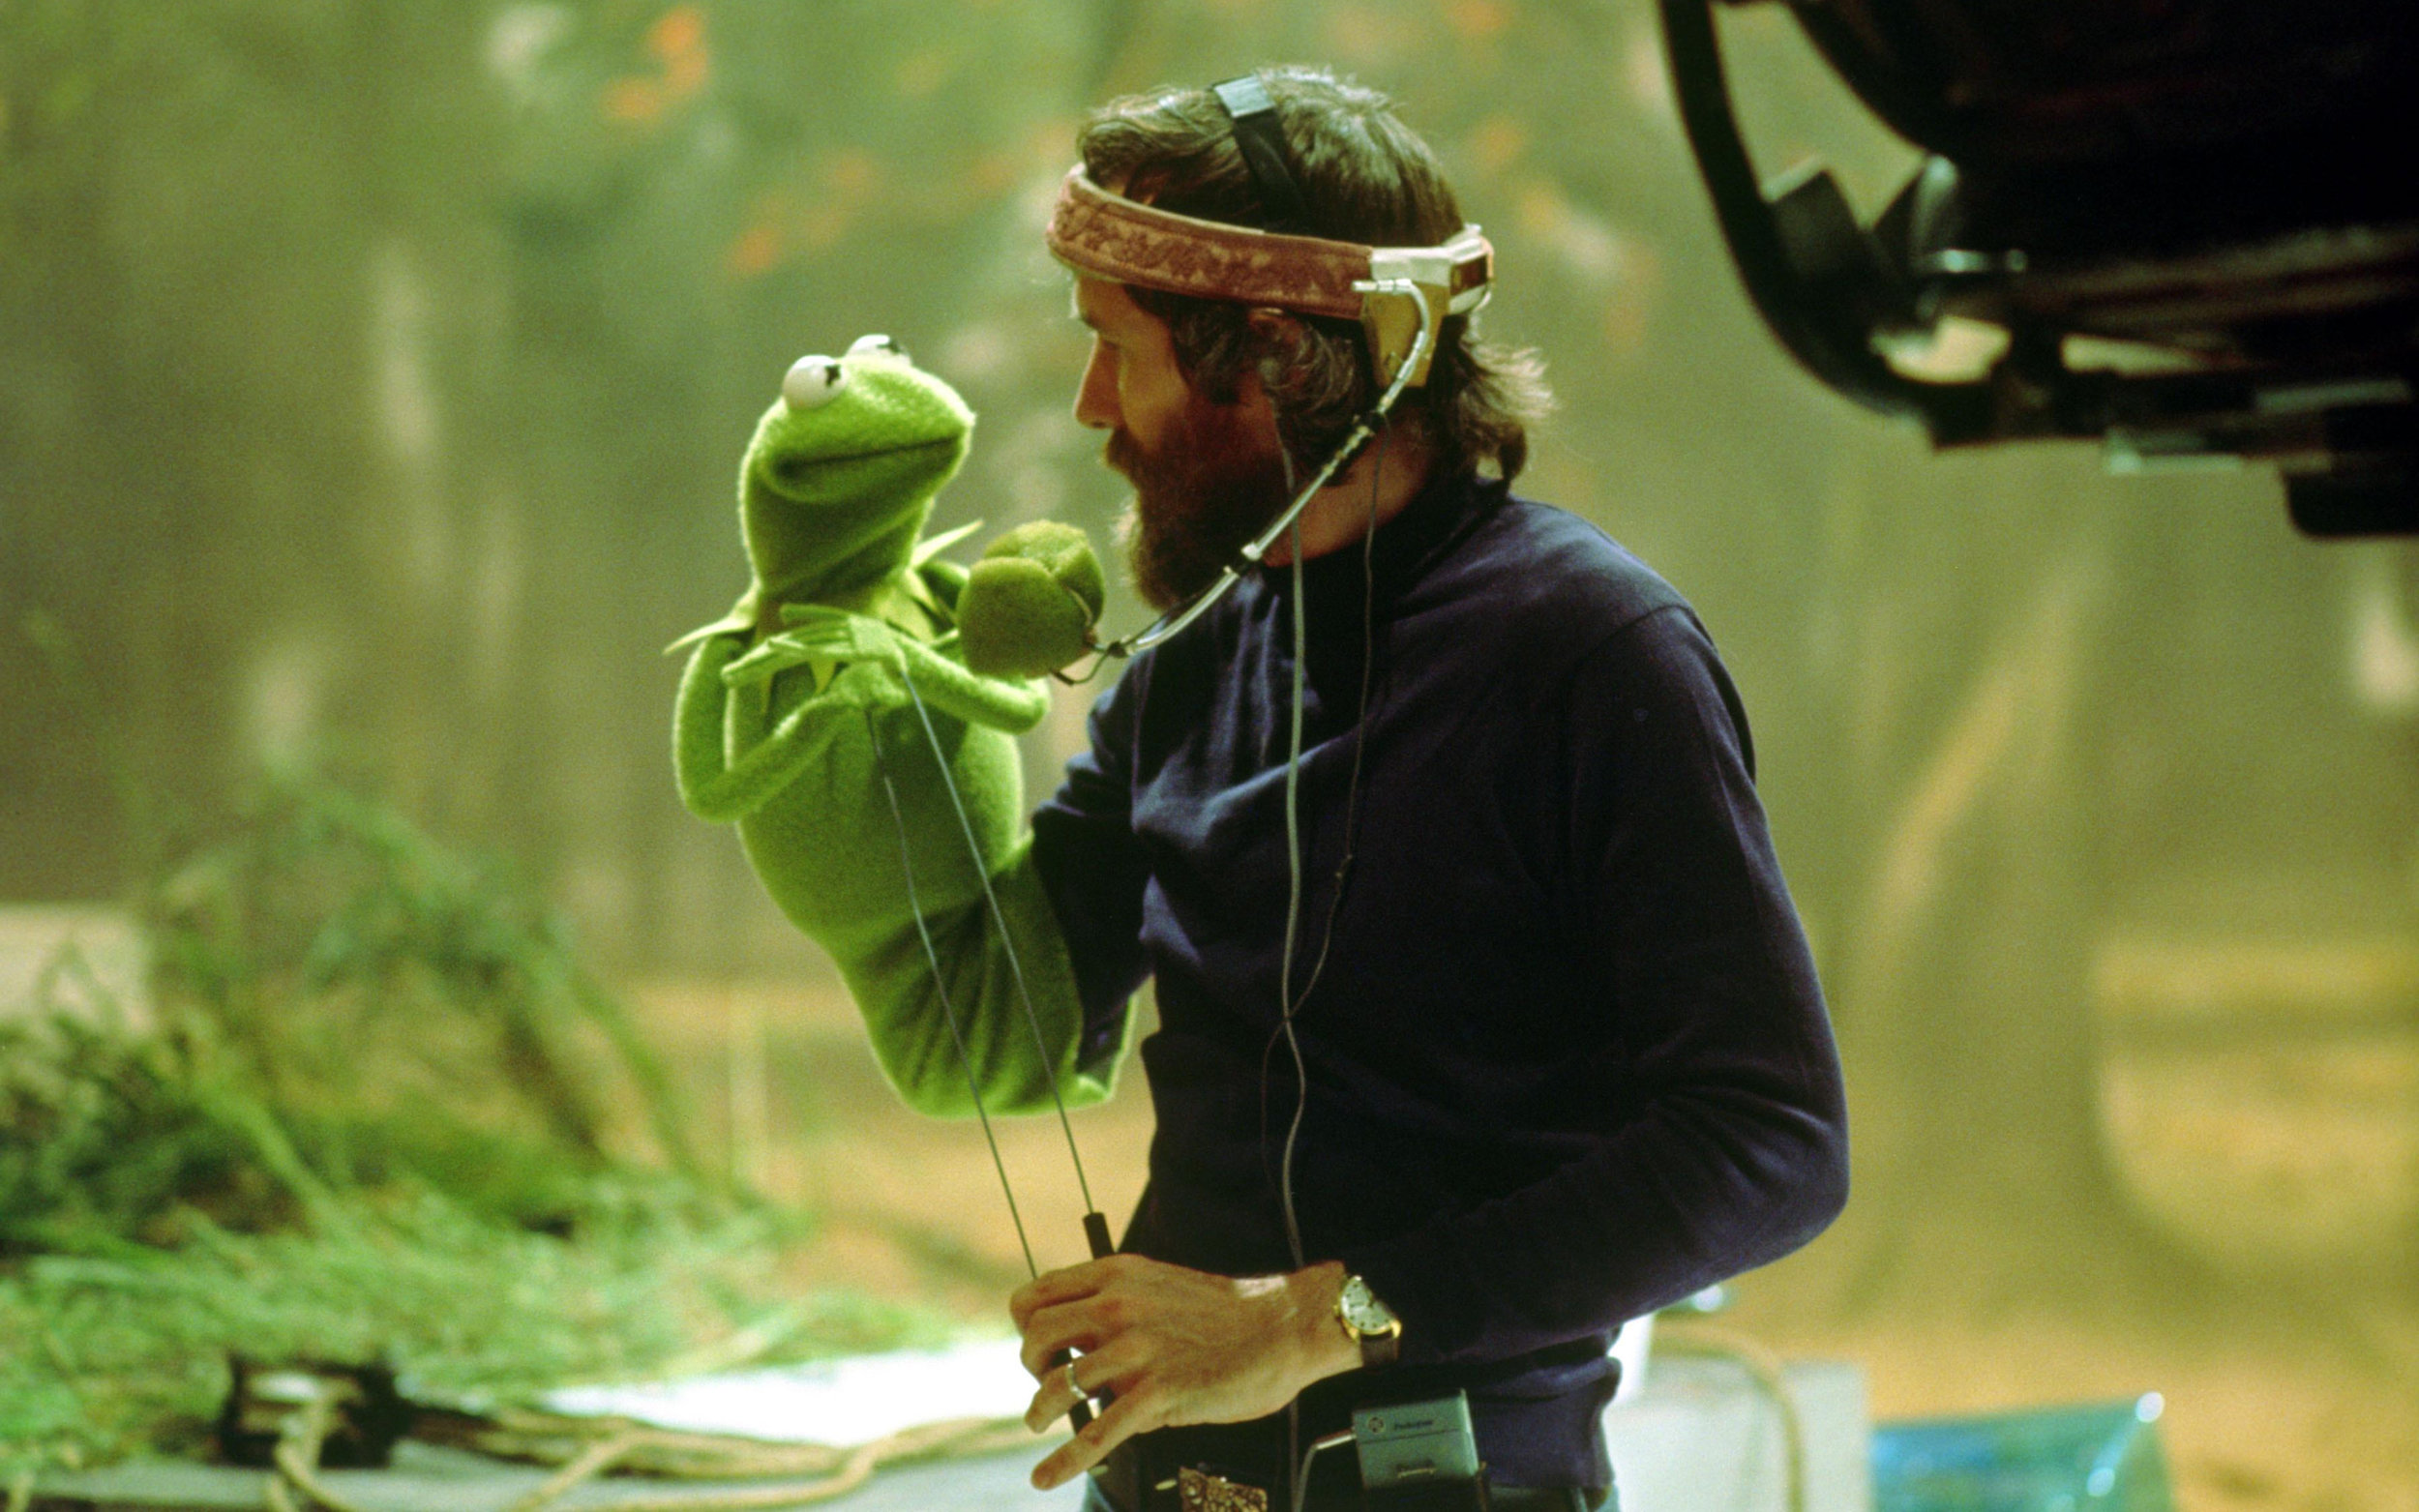 """A 1978 photo captures a candid moment between James Maury """"Jim"""" Henson and Kermit the Frog on the set of """"The Muppet Movie"""""""